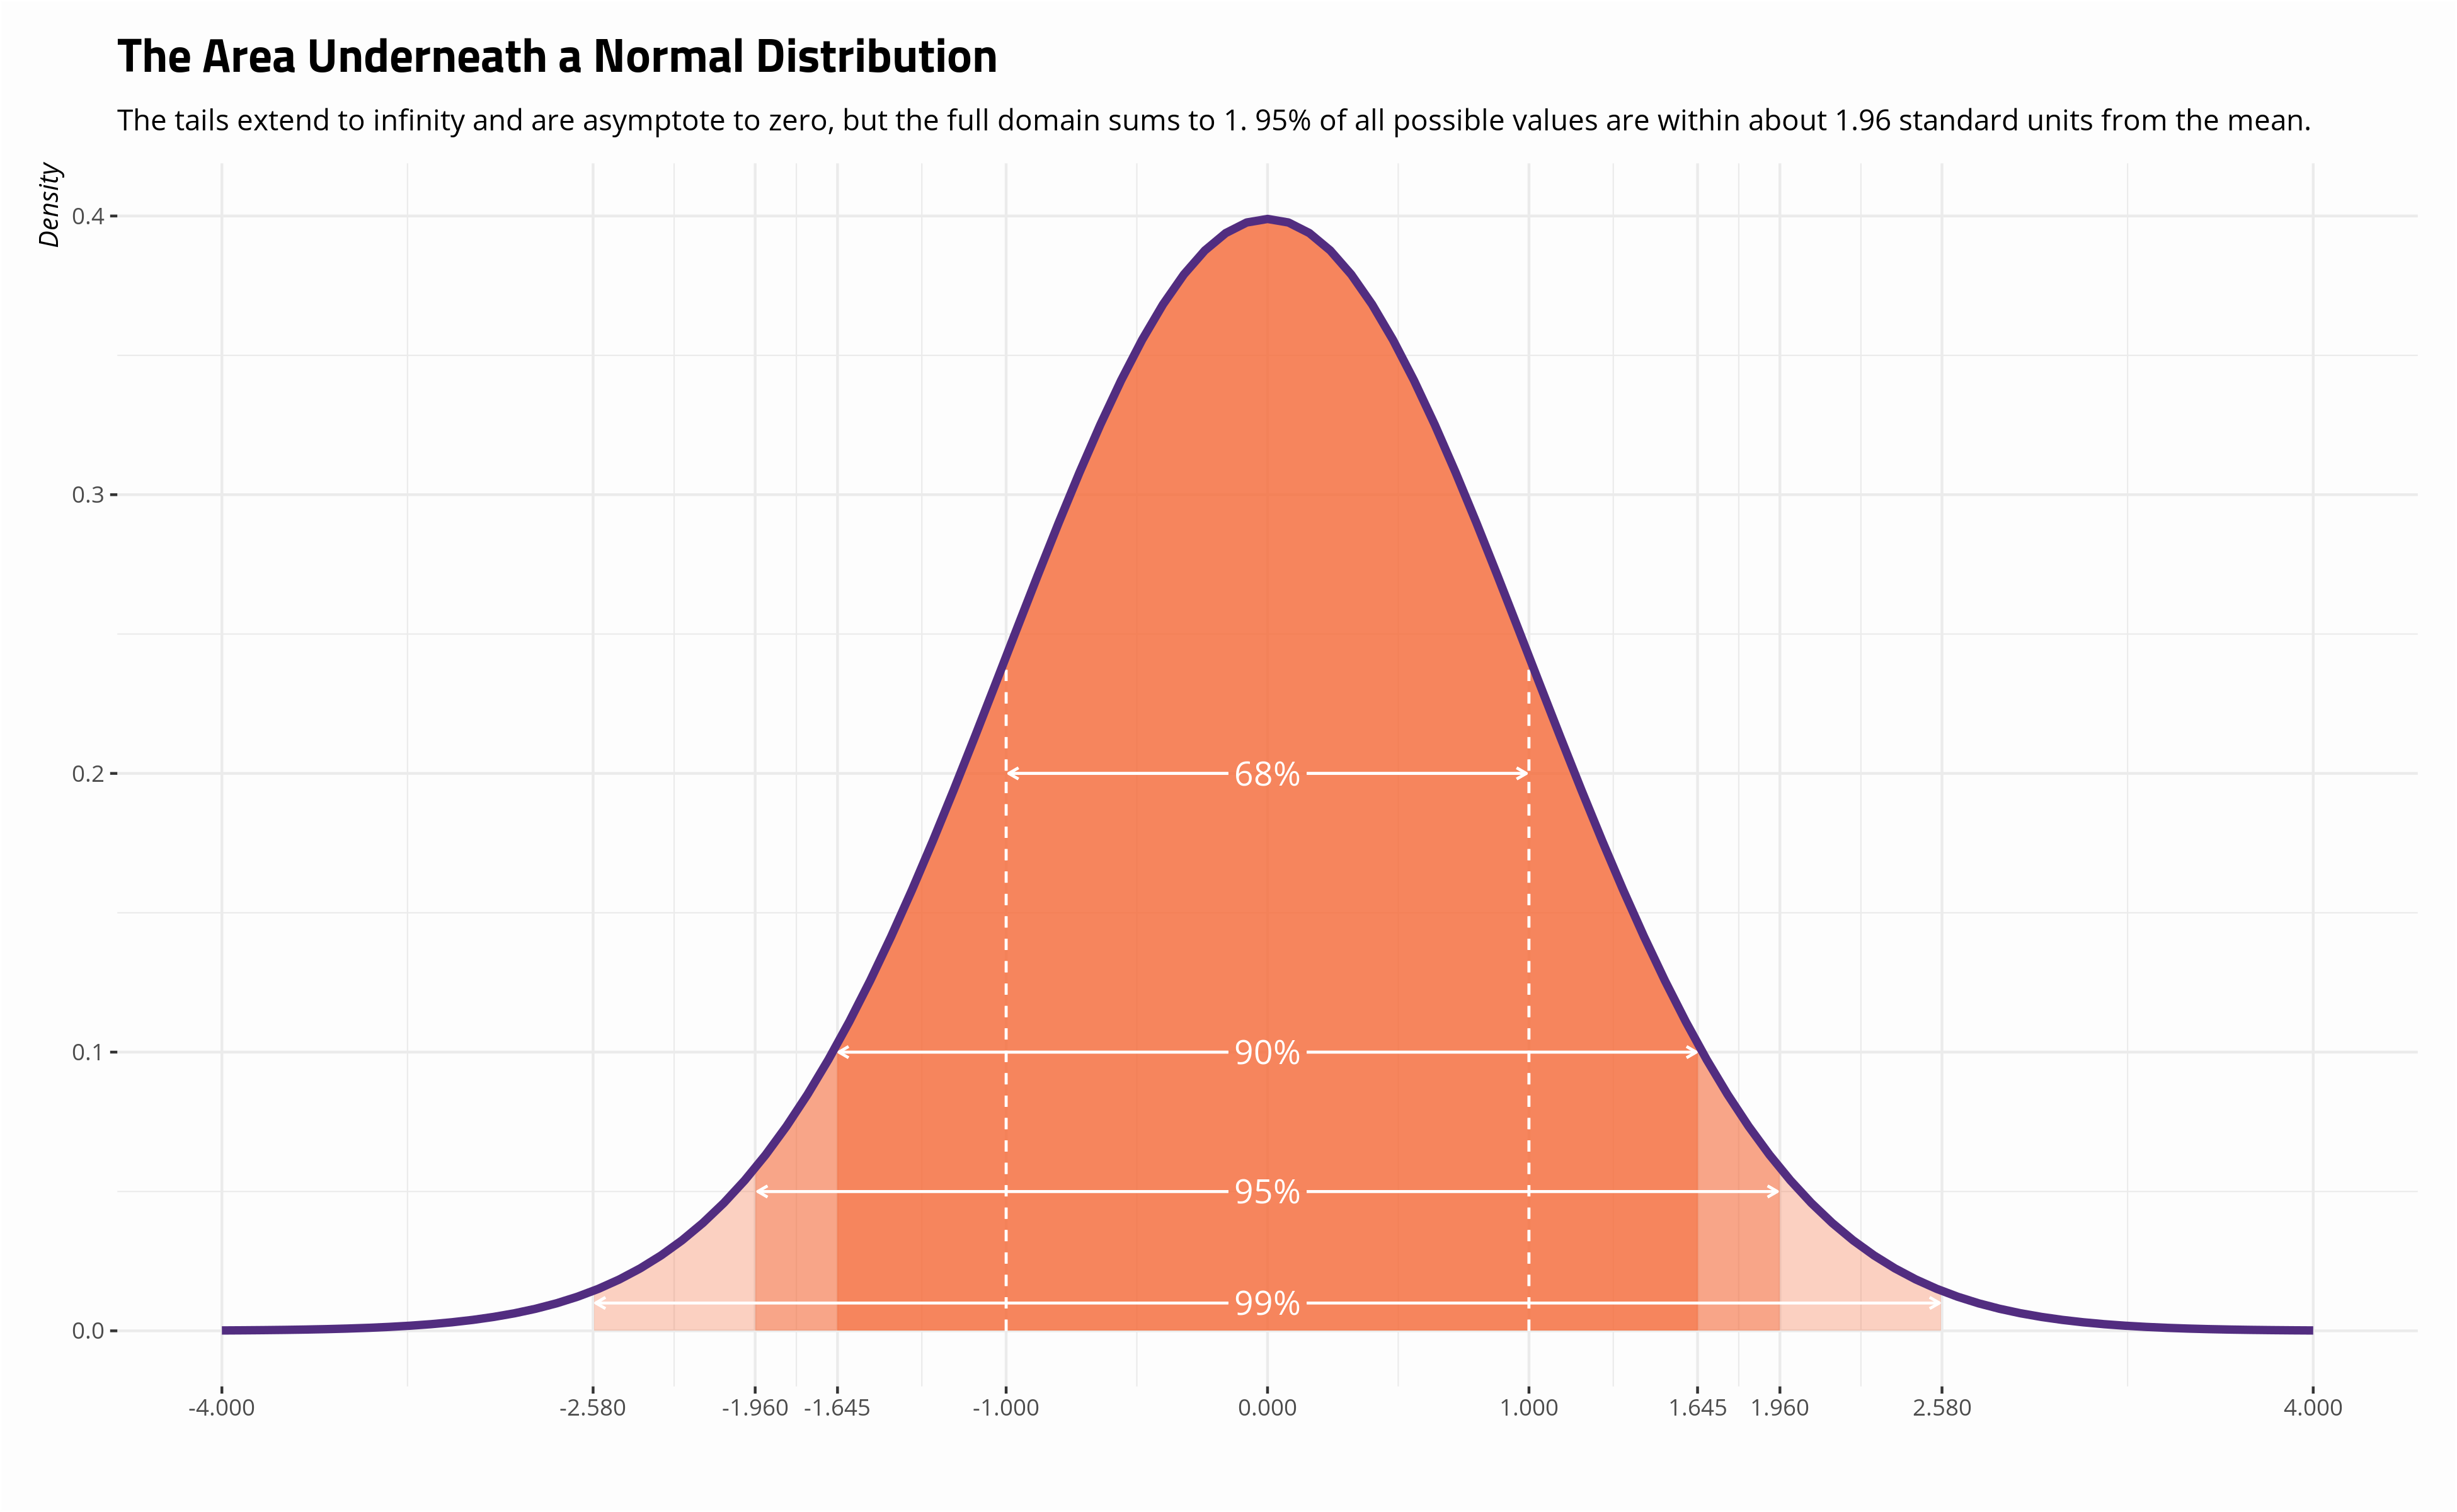 plot of chunk a-normal-distribution-with-areas-under-curve